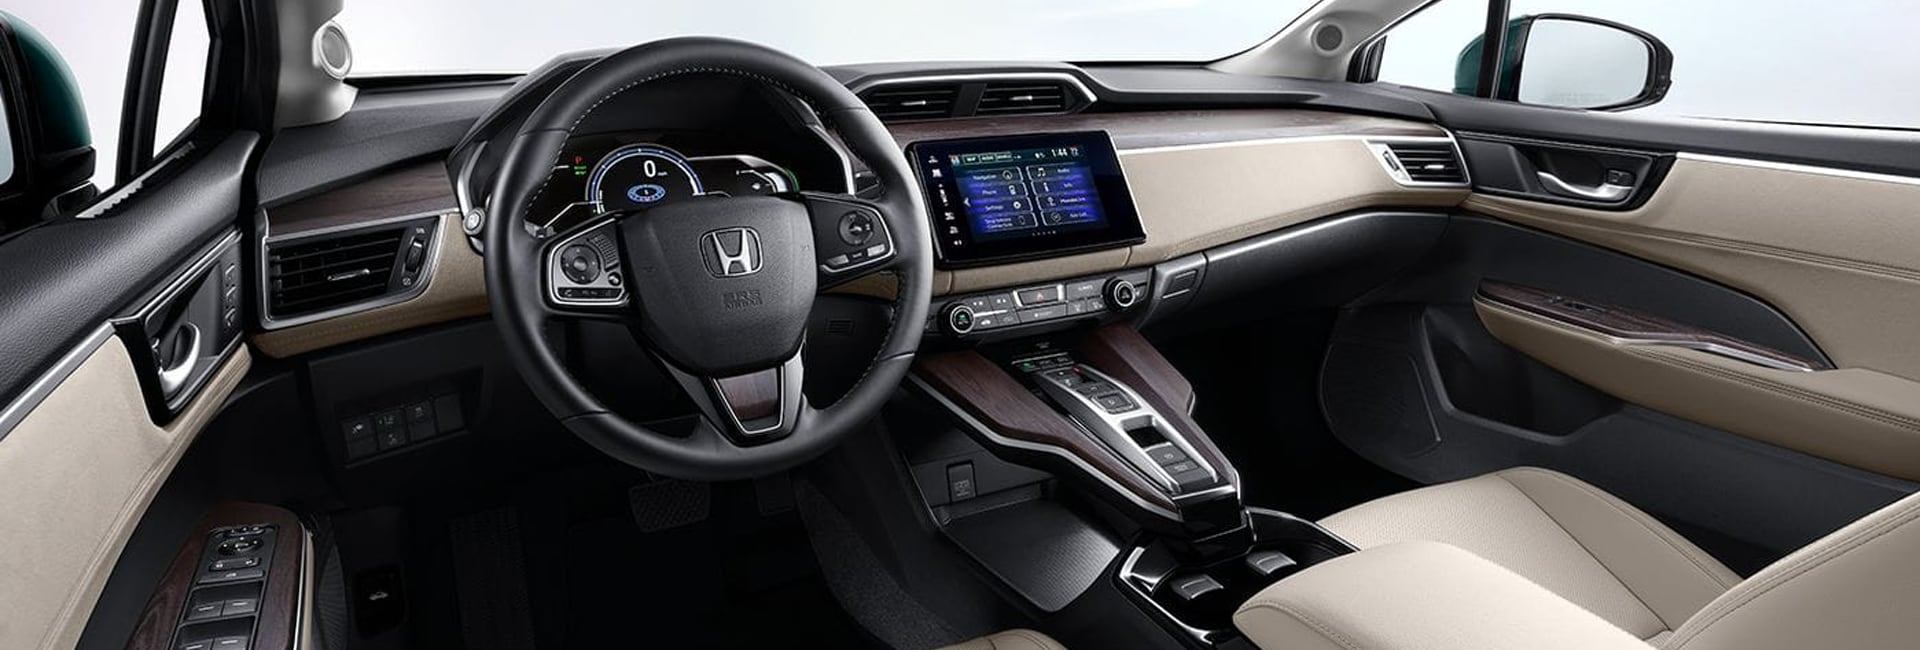 2020 Honda Clarity Plug-In Hybrid Interior